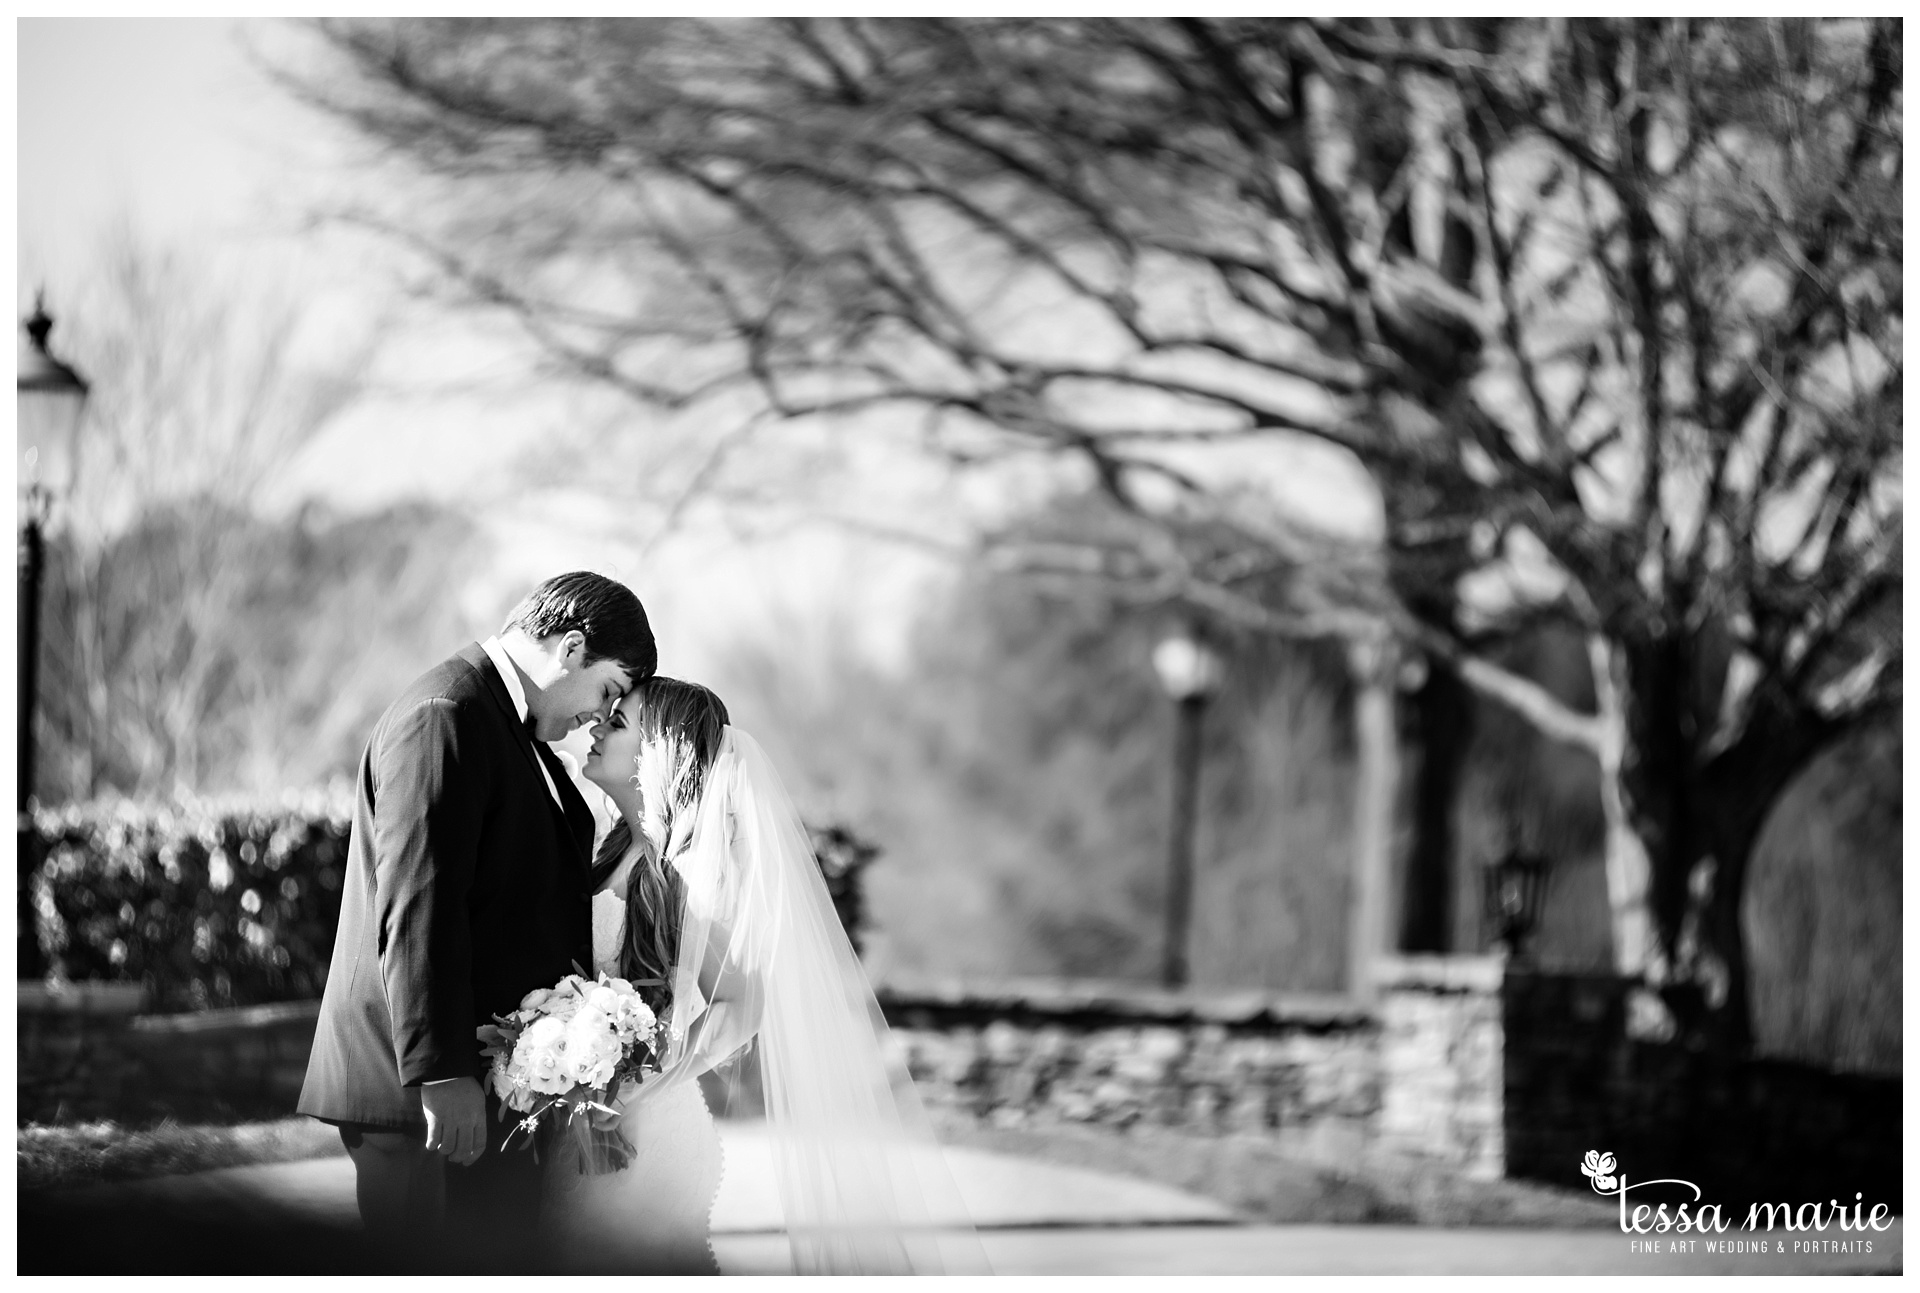 tessa_marie_weddings_legacy_story_focused_wedding_pictures_atlanta_wedding_photographer_0092